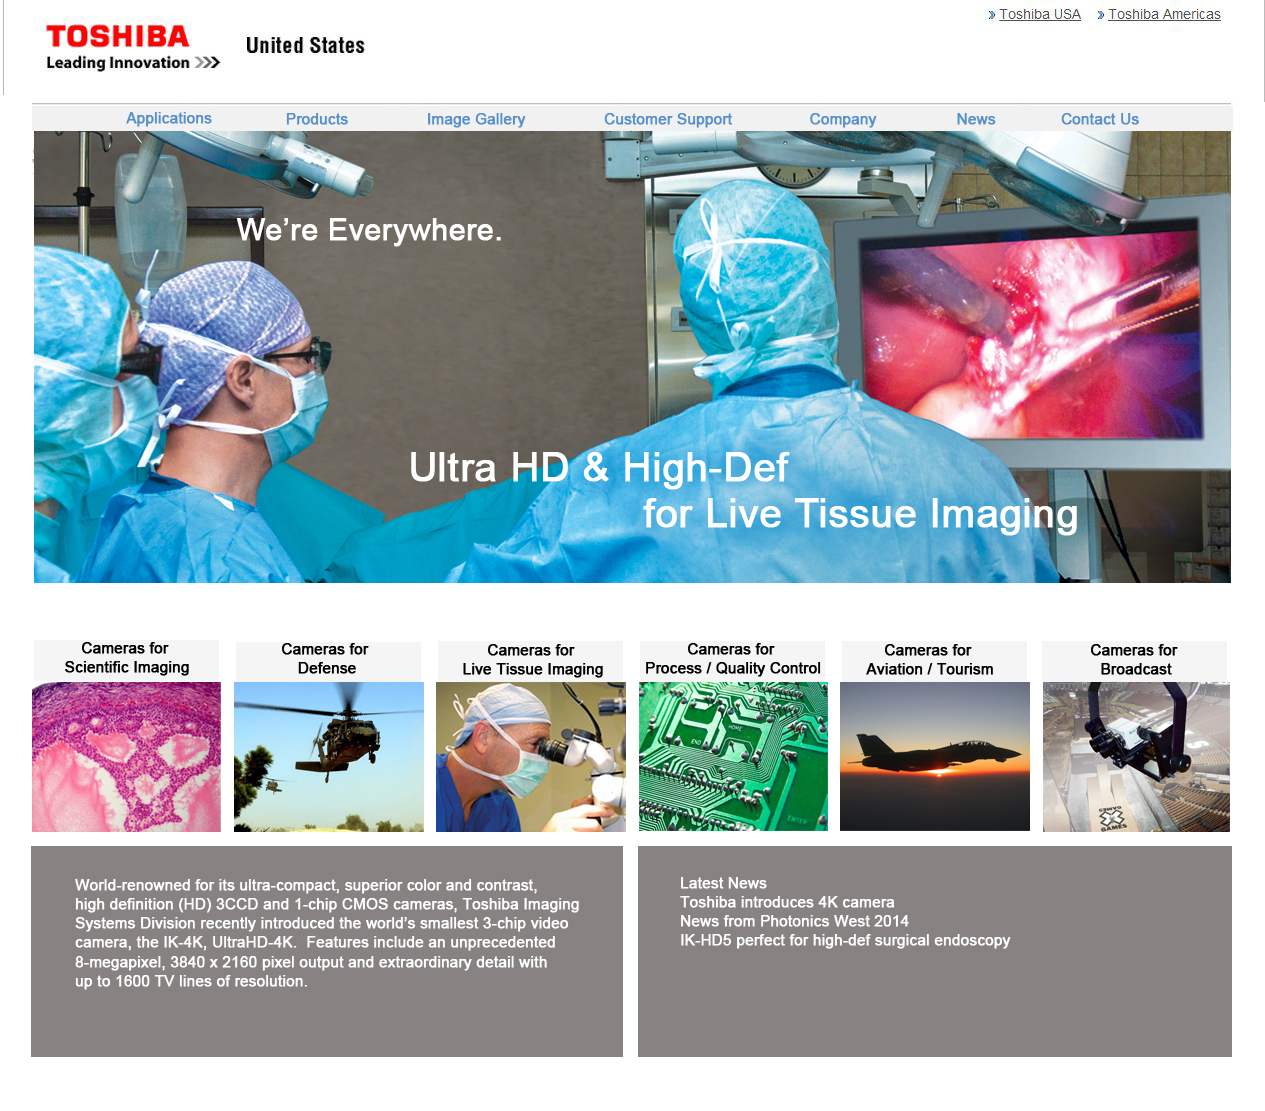 Toshiba Imaging Systems